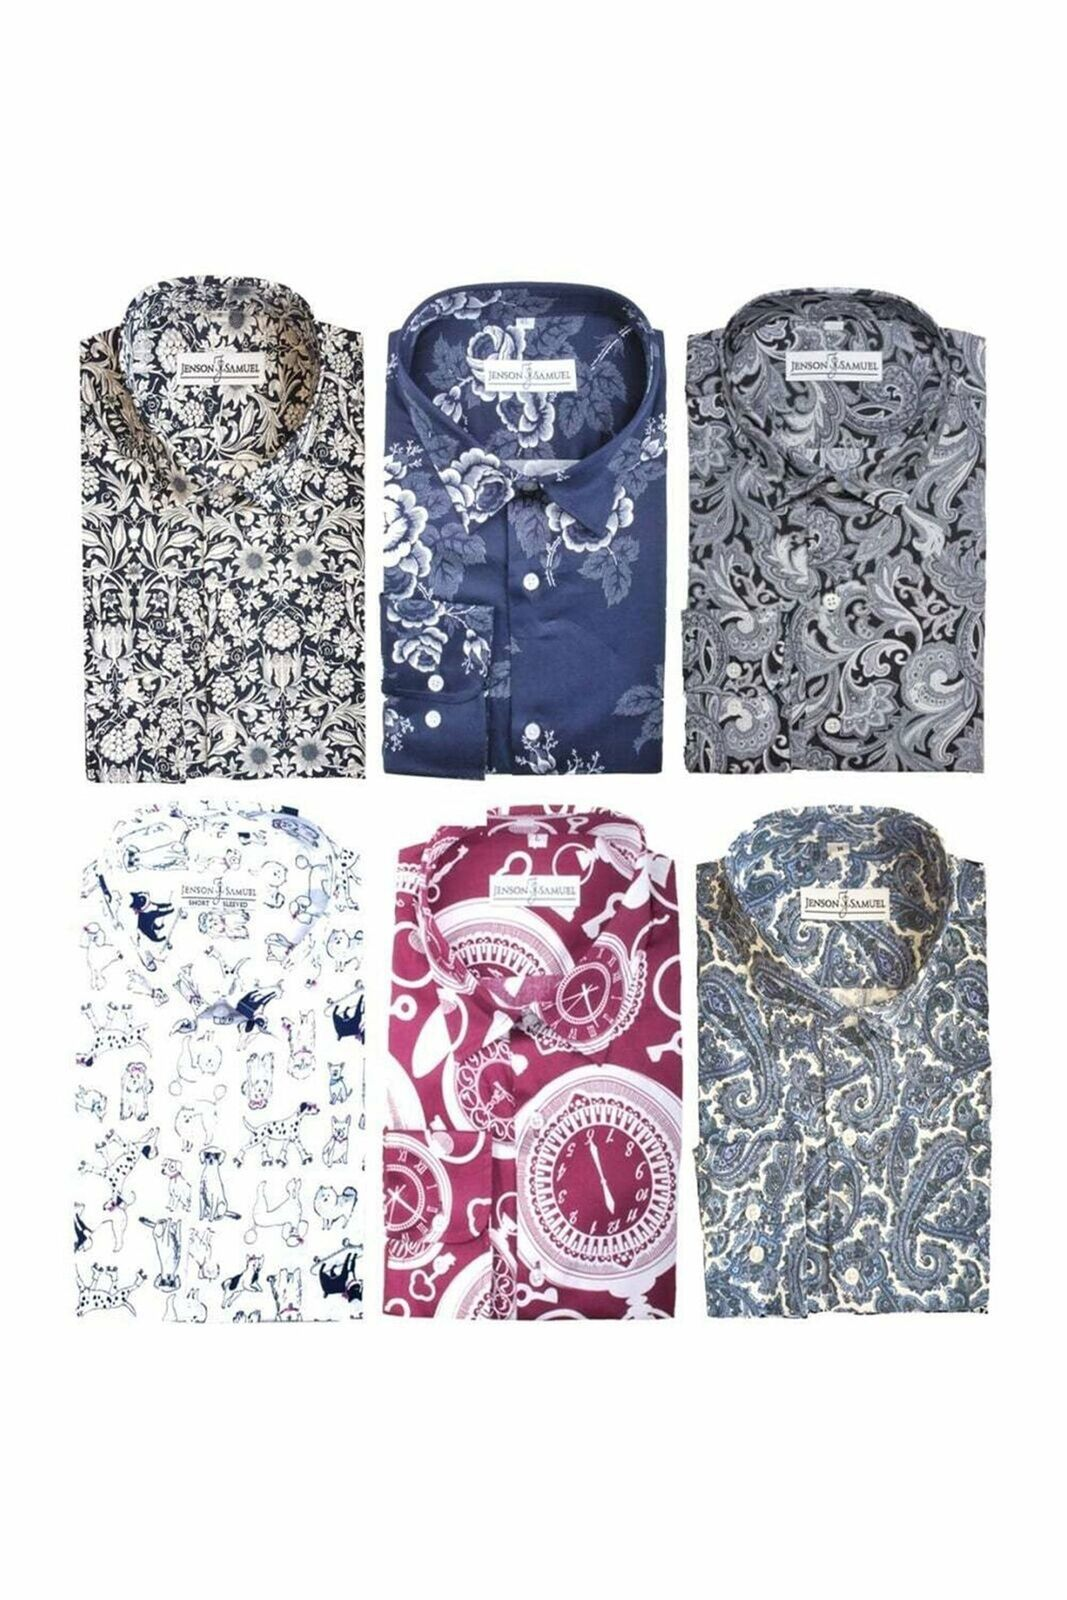 JSS Mens 100% Cotton Regular Classic fit MOD Printed Paisley Floral Shirts S-4XL